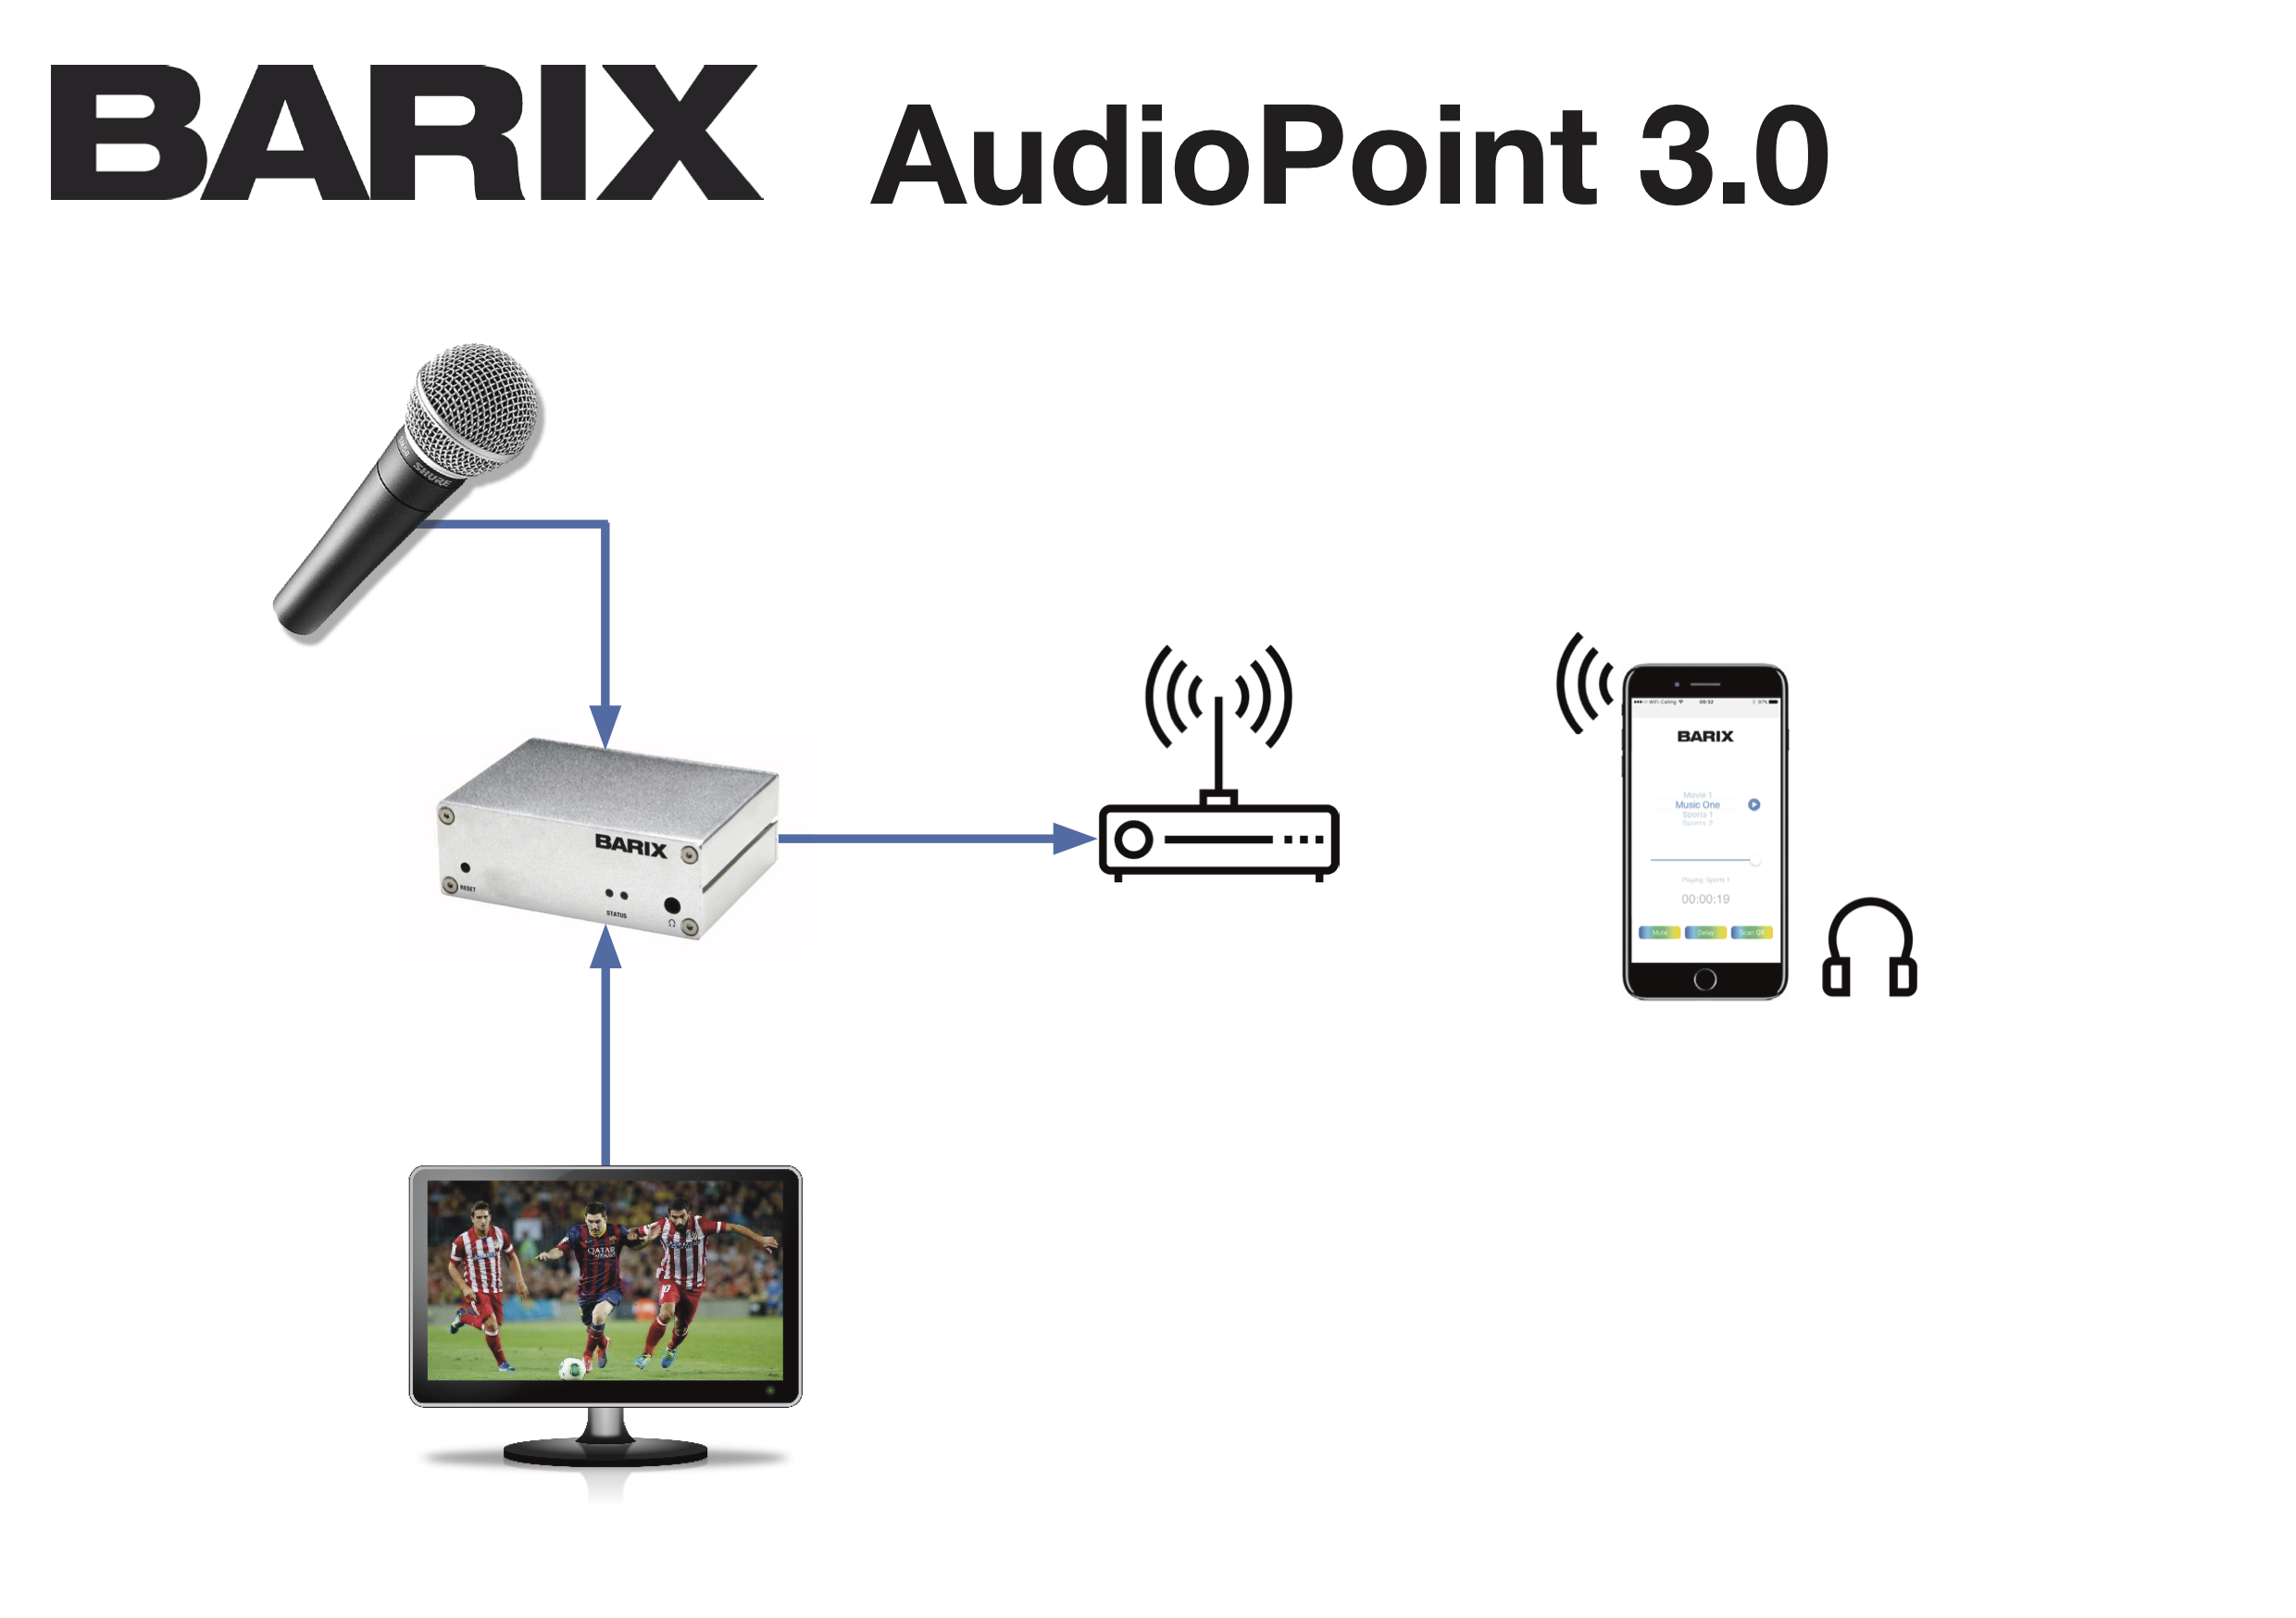 Barix-AudioPoint-Diagram.jpg